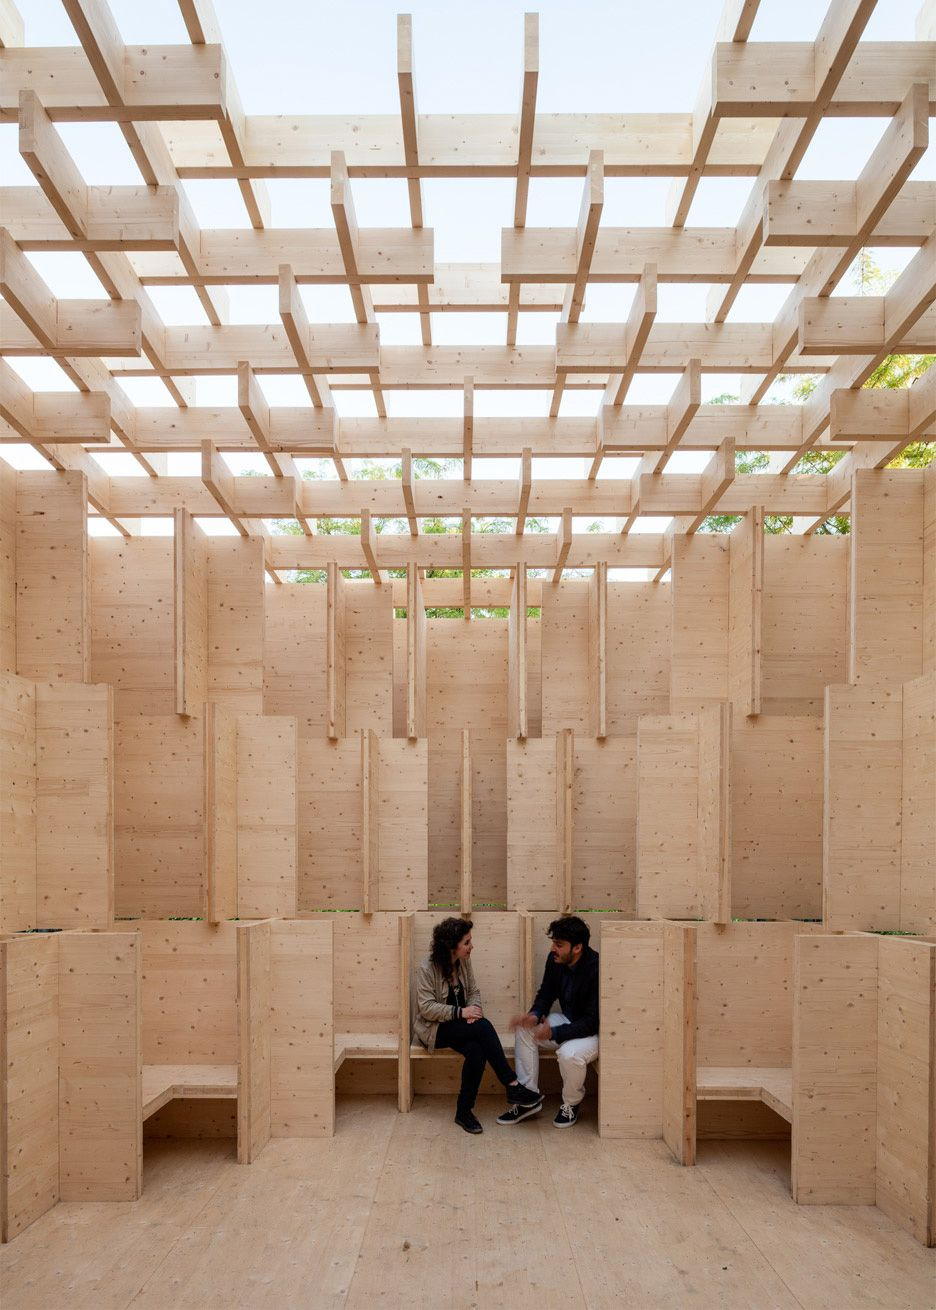 Venice architecture biennale 2016 highlights pavillon for Raumgestaltung 2016